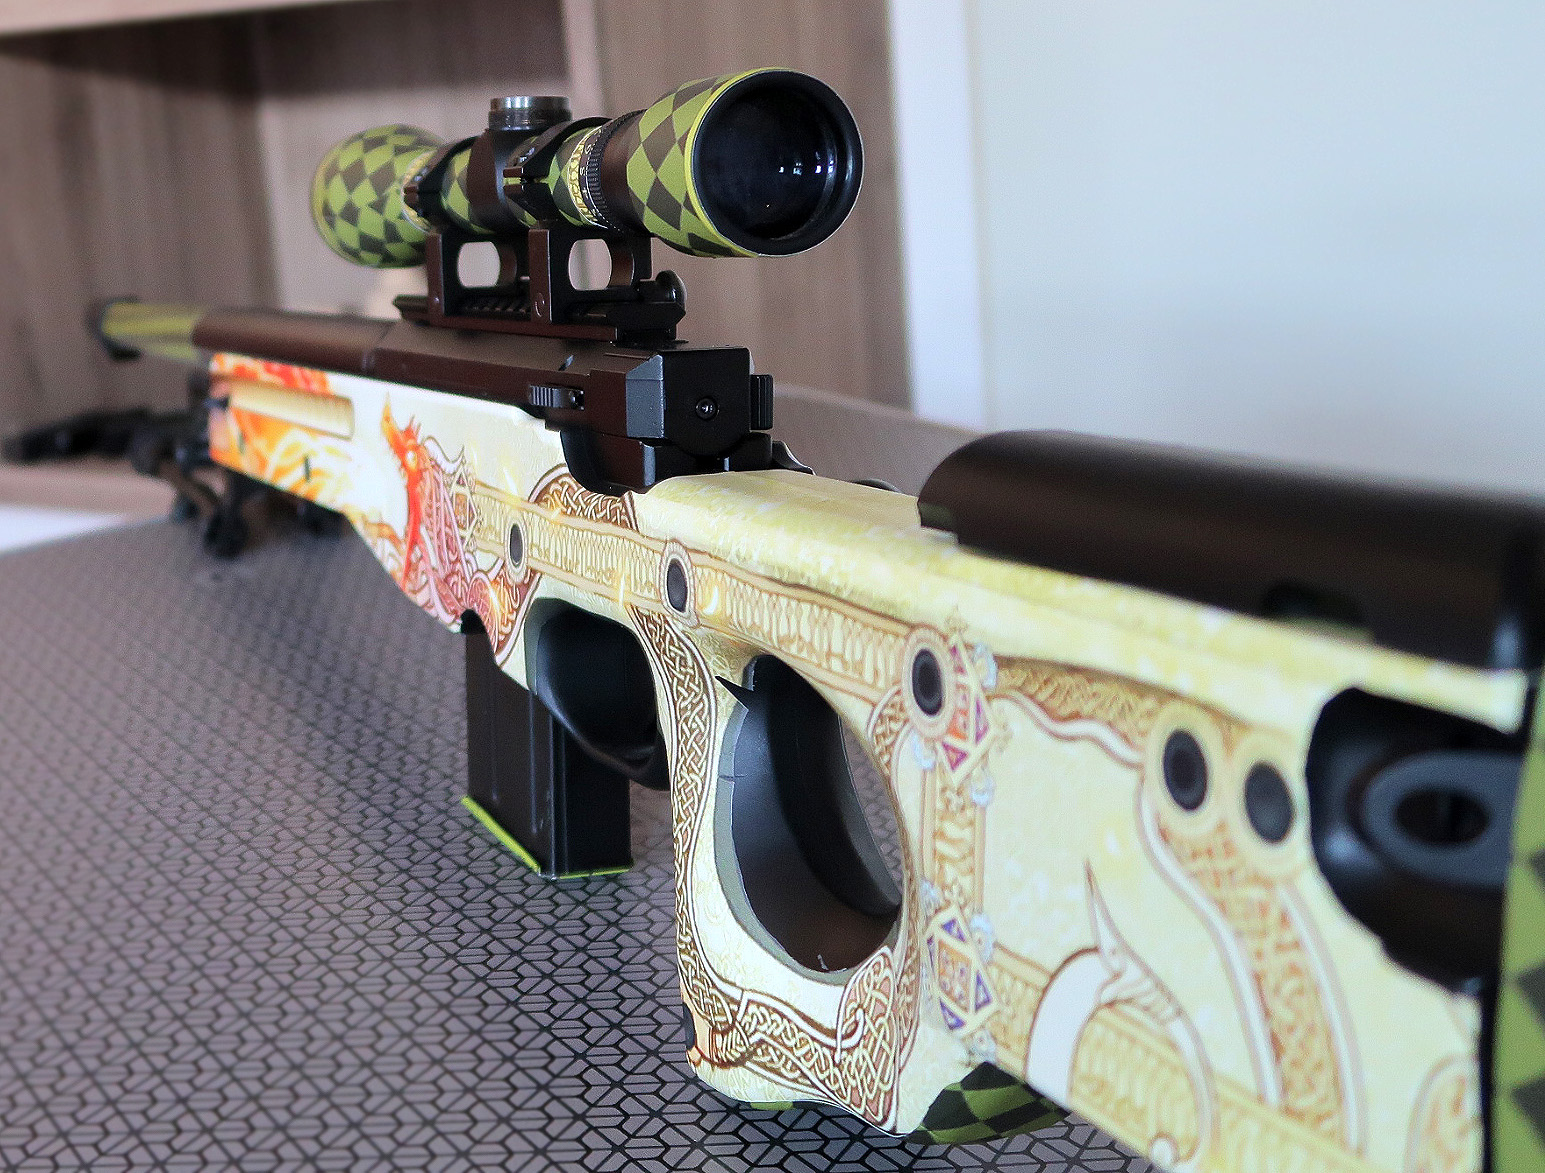 Awp dragon lore vinyl decal for l96 airsoft models silo for Salon de l airsoft